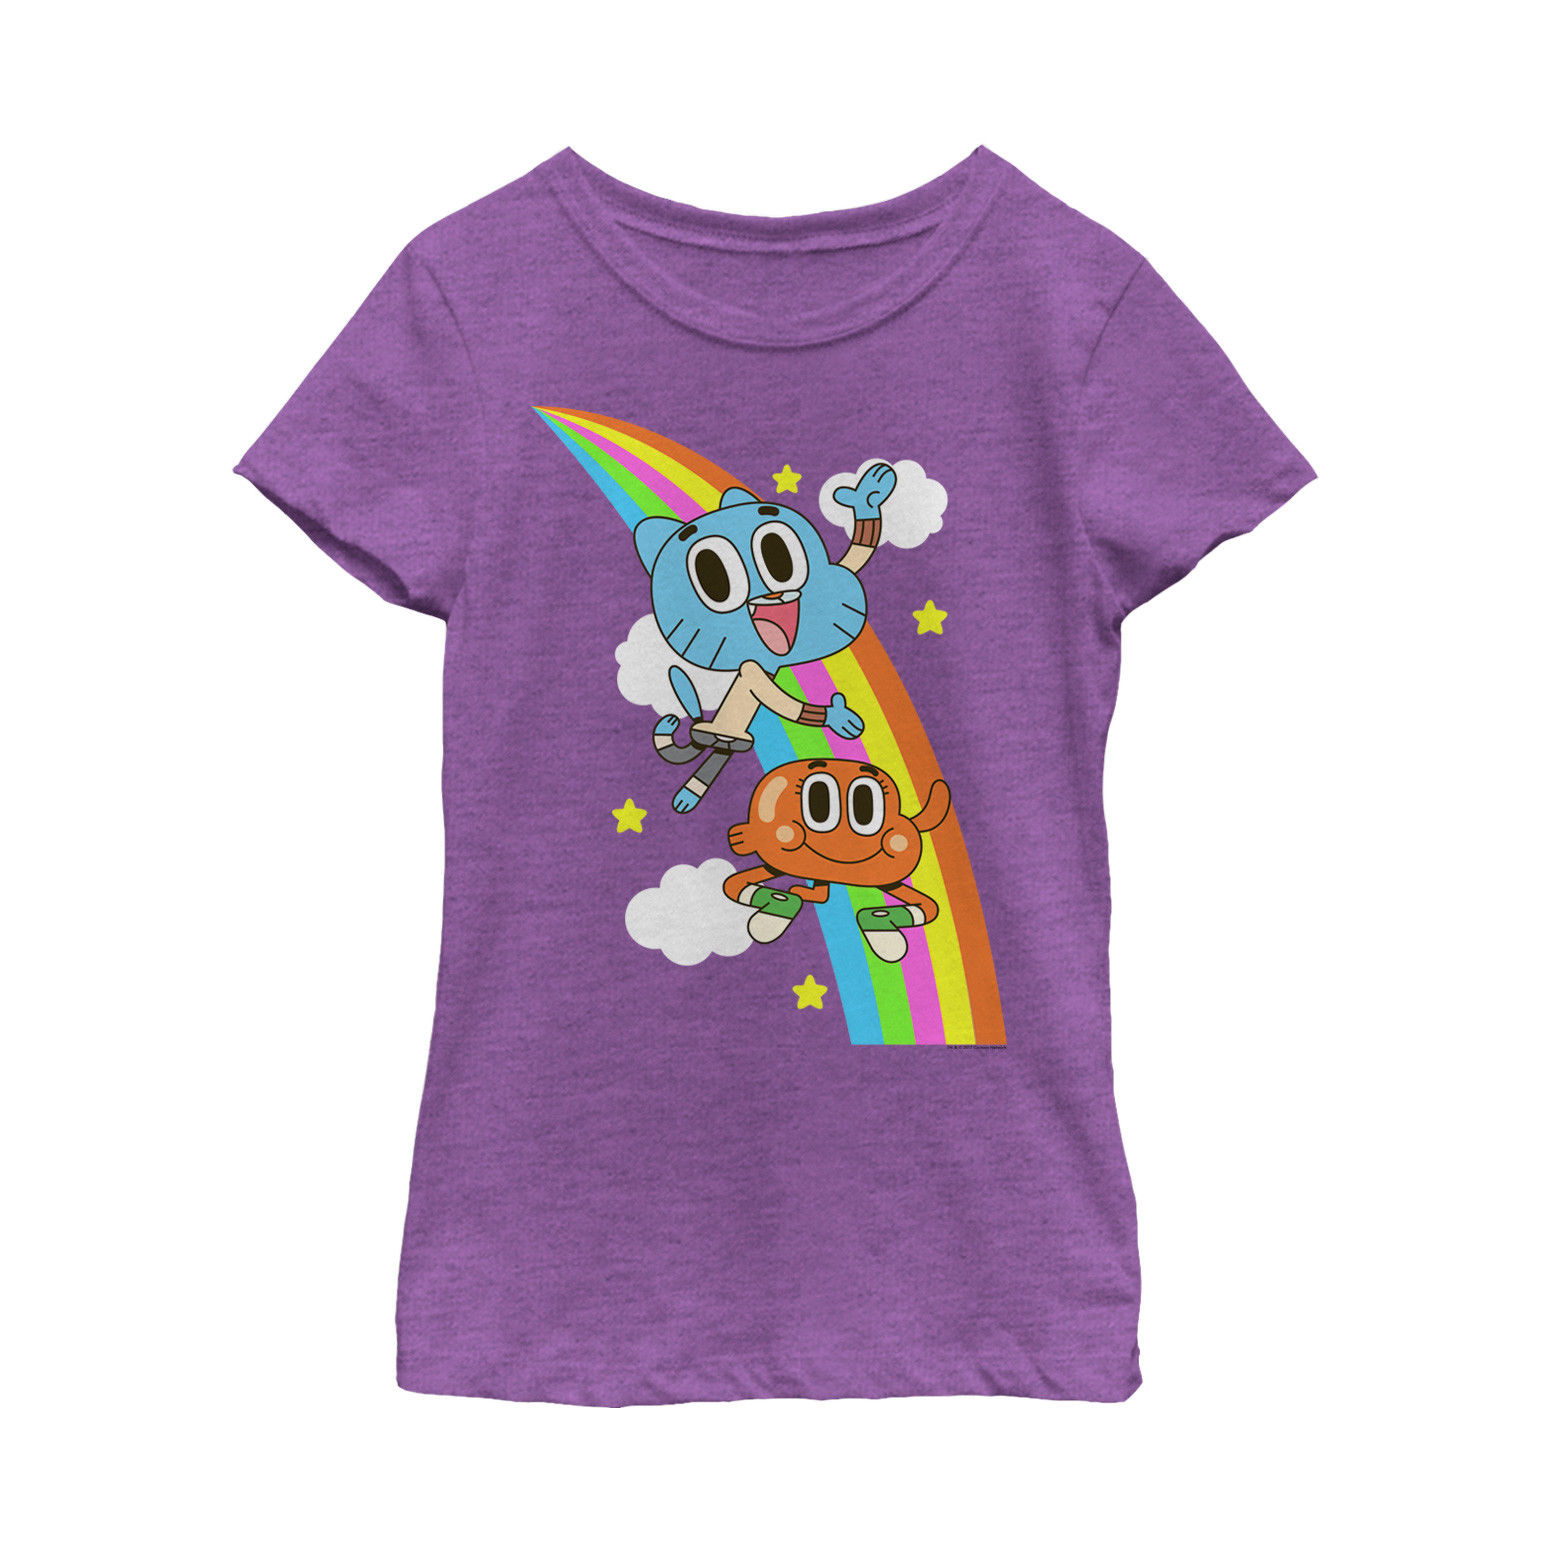 THE AMAZING WORLD OF GUMBALL YOUTH CUSTOM T-SHIRT MORE COLORS